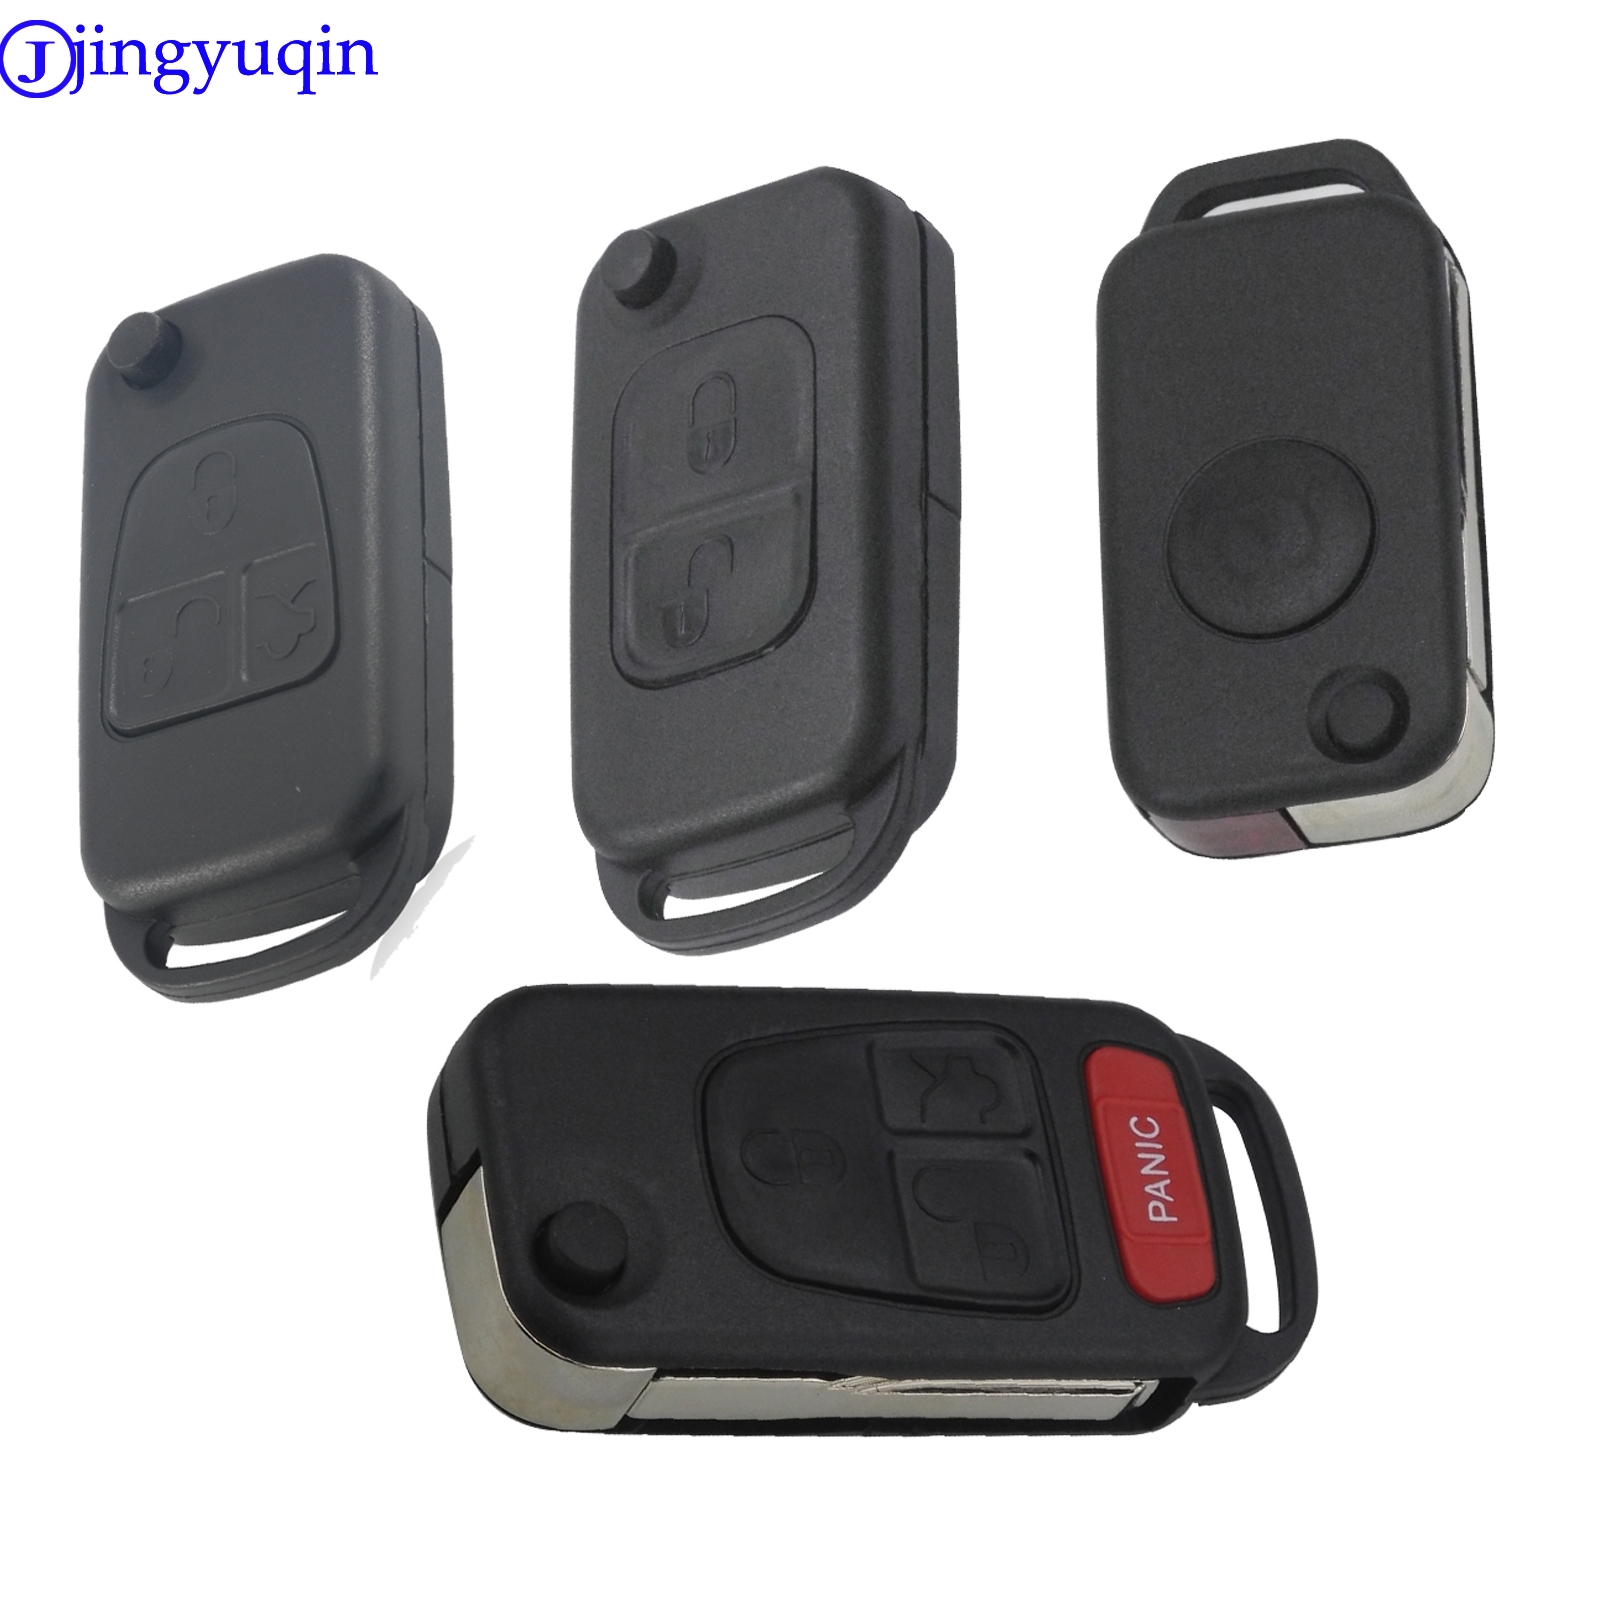 10pcs Flip Folding Replacement Remote Car <font><b>Key</b></font> Shell For <font><b>Mercedes</b></font> For Benz W168 W124 W202 <font><b>W203</b></font> A C E ML C CL S SL SEL SLK E113 image